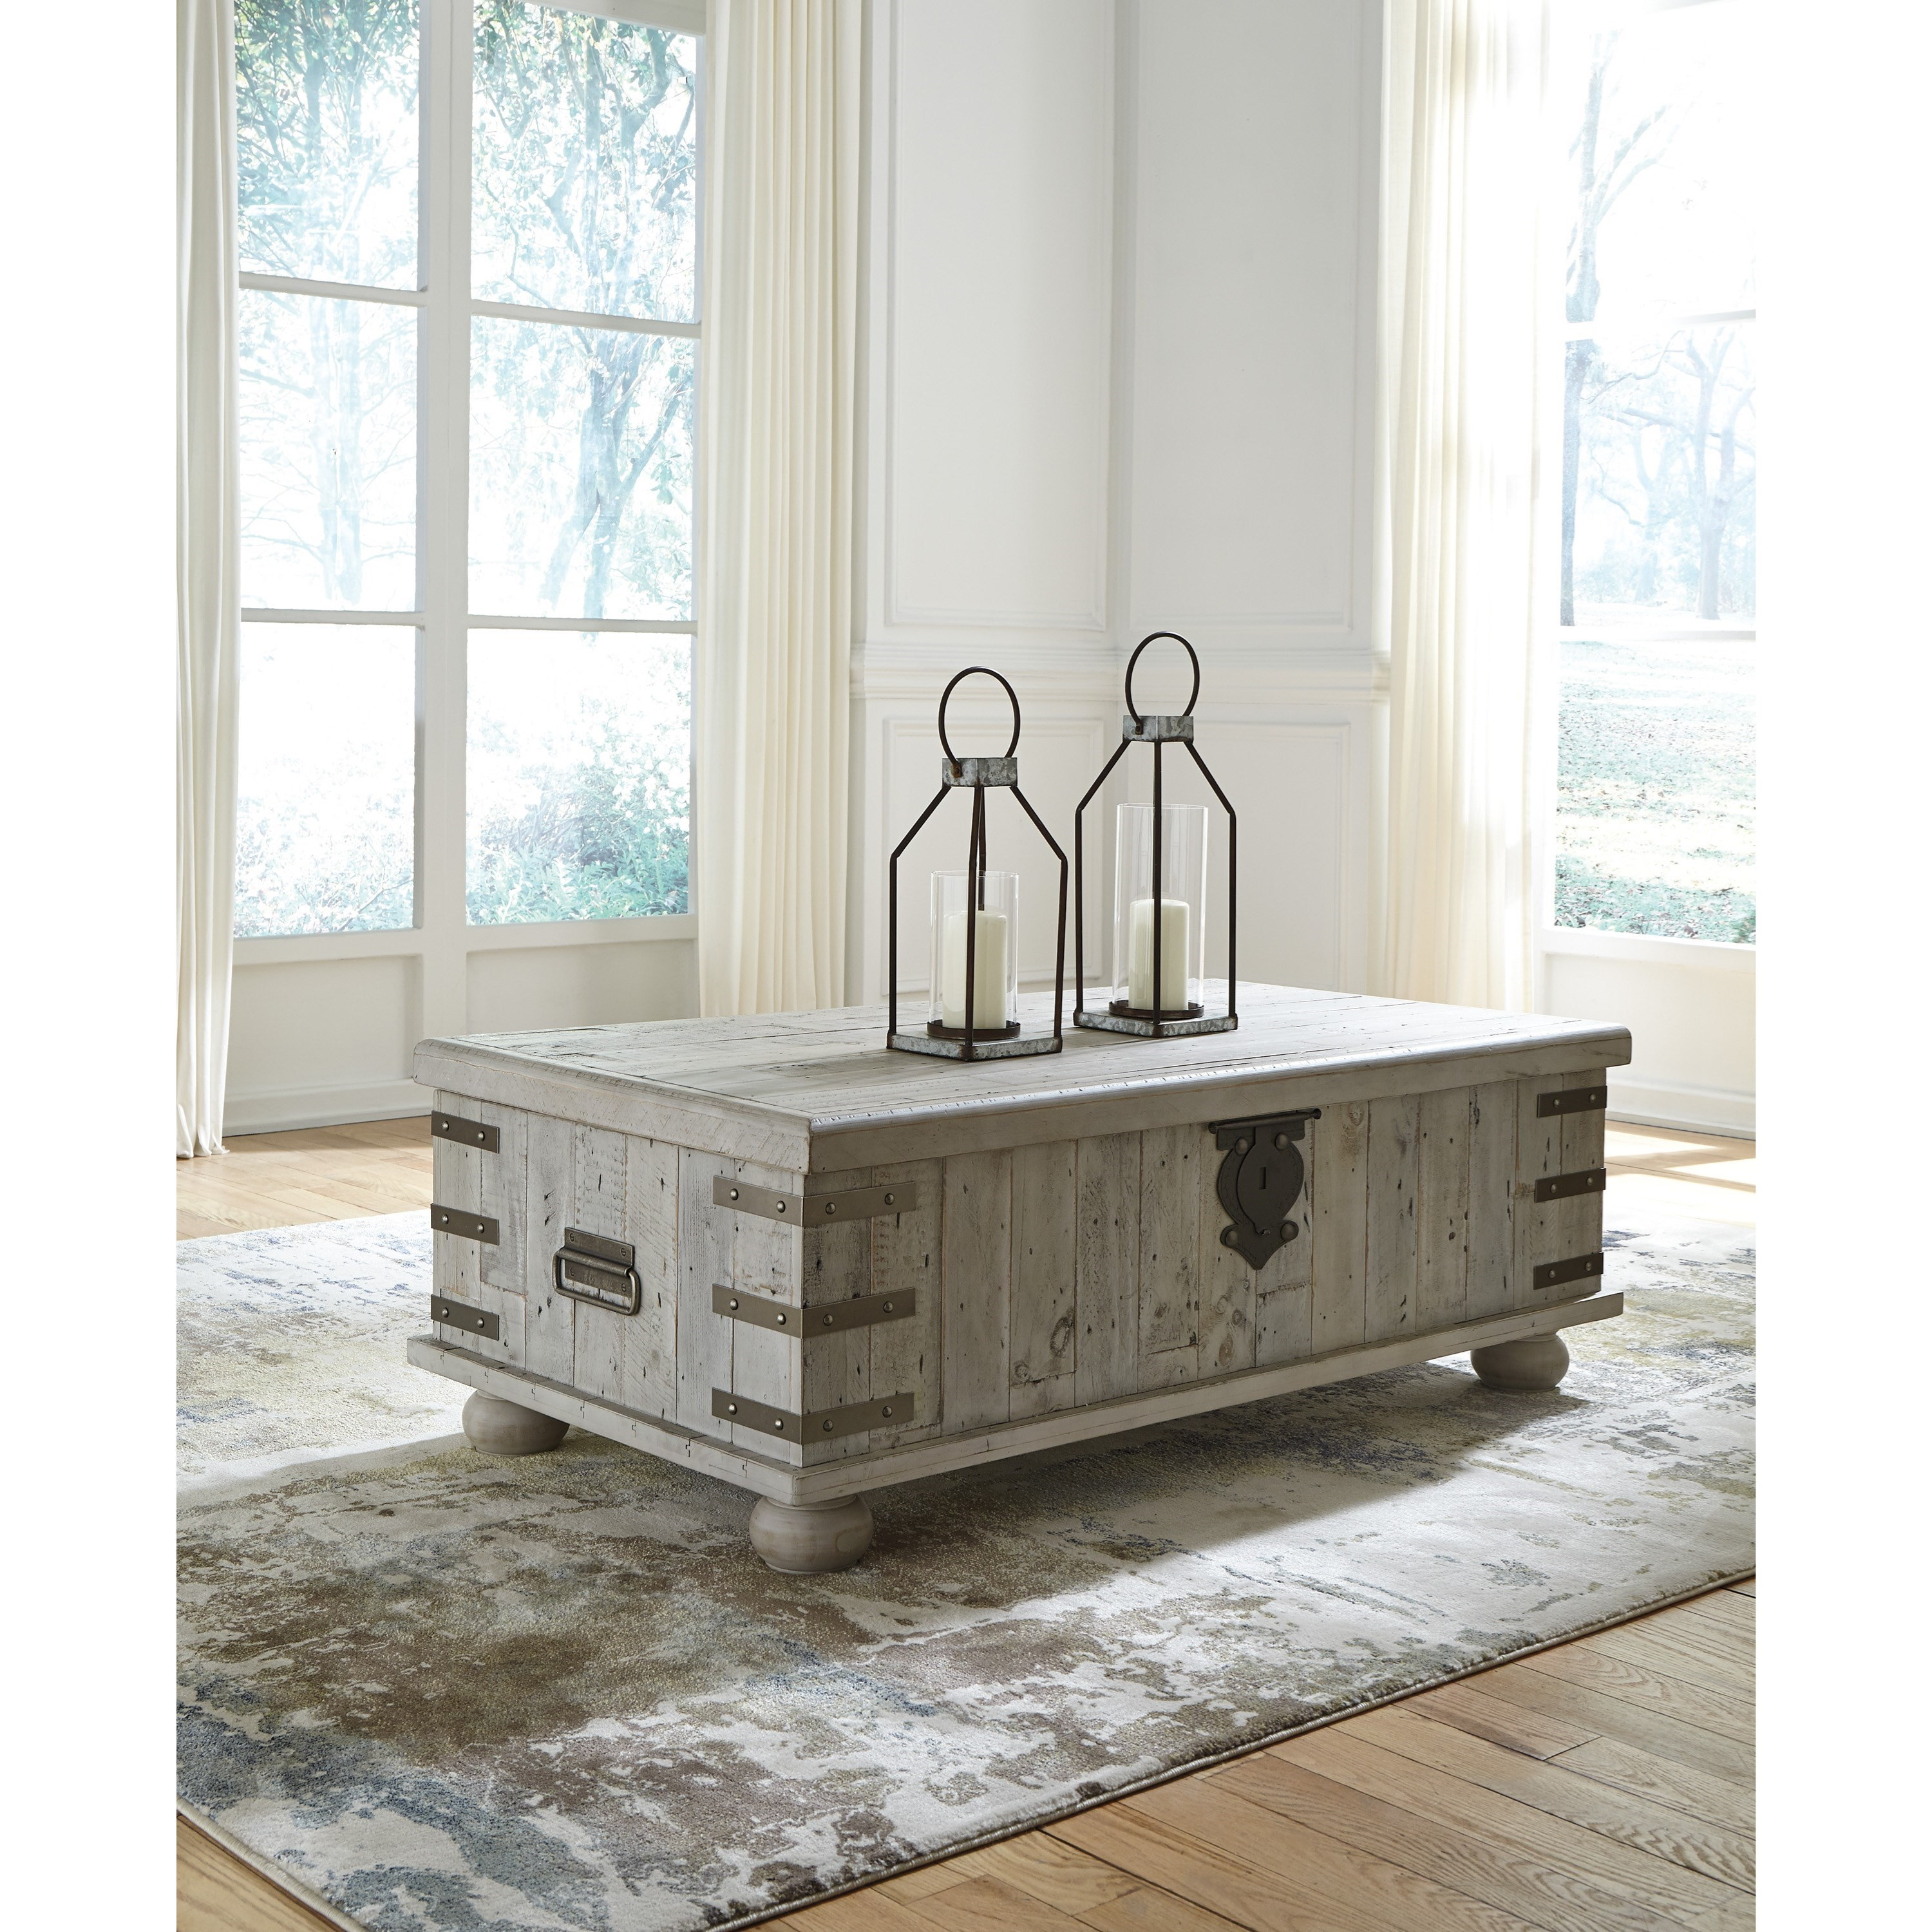 Ashley Furniture Cary Nc: Signature Design By Ashley Carynhurst Industrial Lift Top